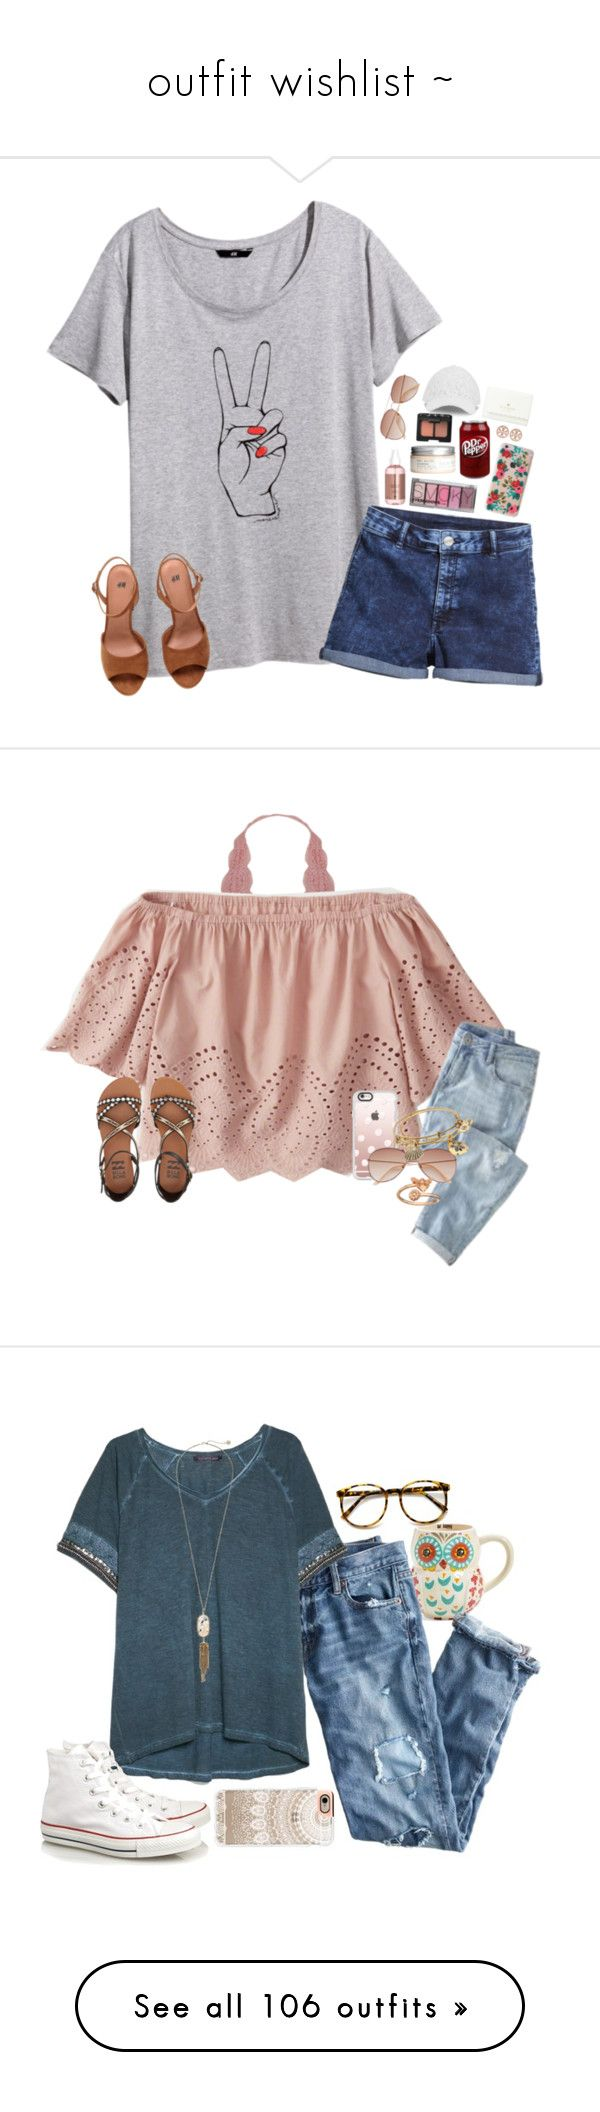 """""""outfit wishlist ~"""" by headcarsmary ❤ liked on Polyvore featuring H&M, Rifle Paper Co, Draper James, NARS Cosmetics, Tory Burch, Kate Spade, Humble Chic, Abercrombie & Fitch, Billabong and Casetify"""